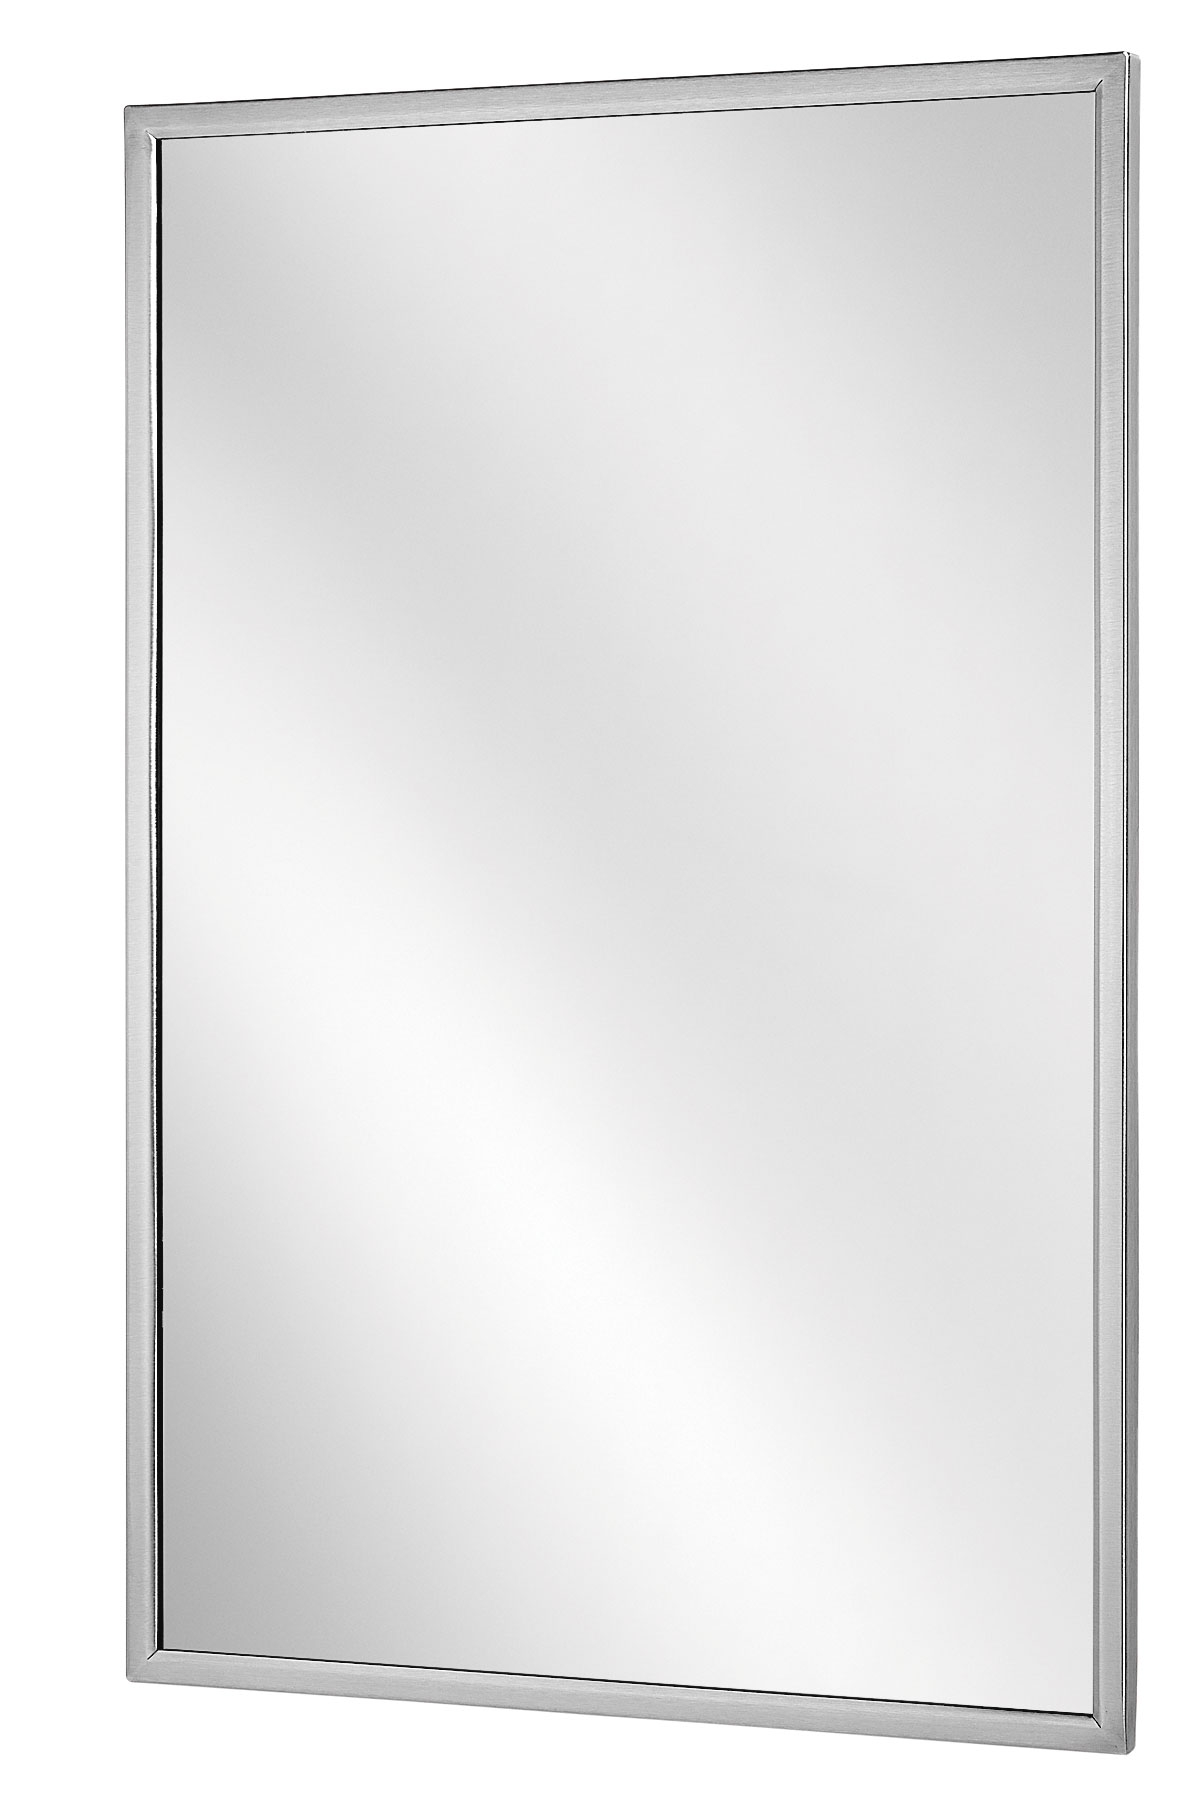 Bradley bathroom accessories - Angle Frame Mirror